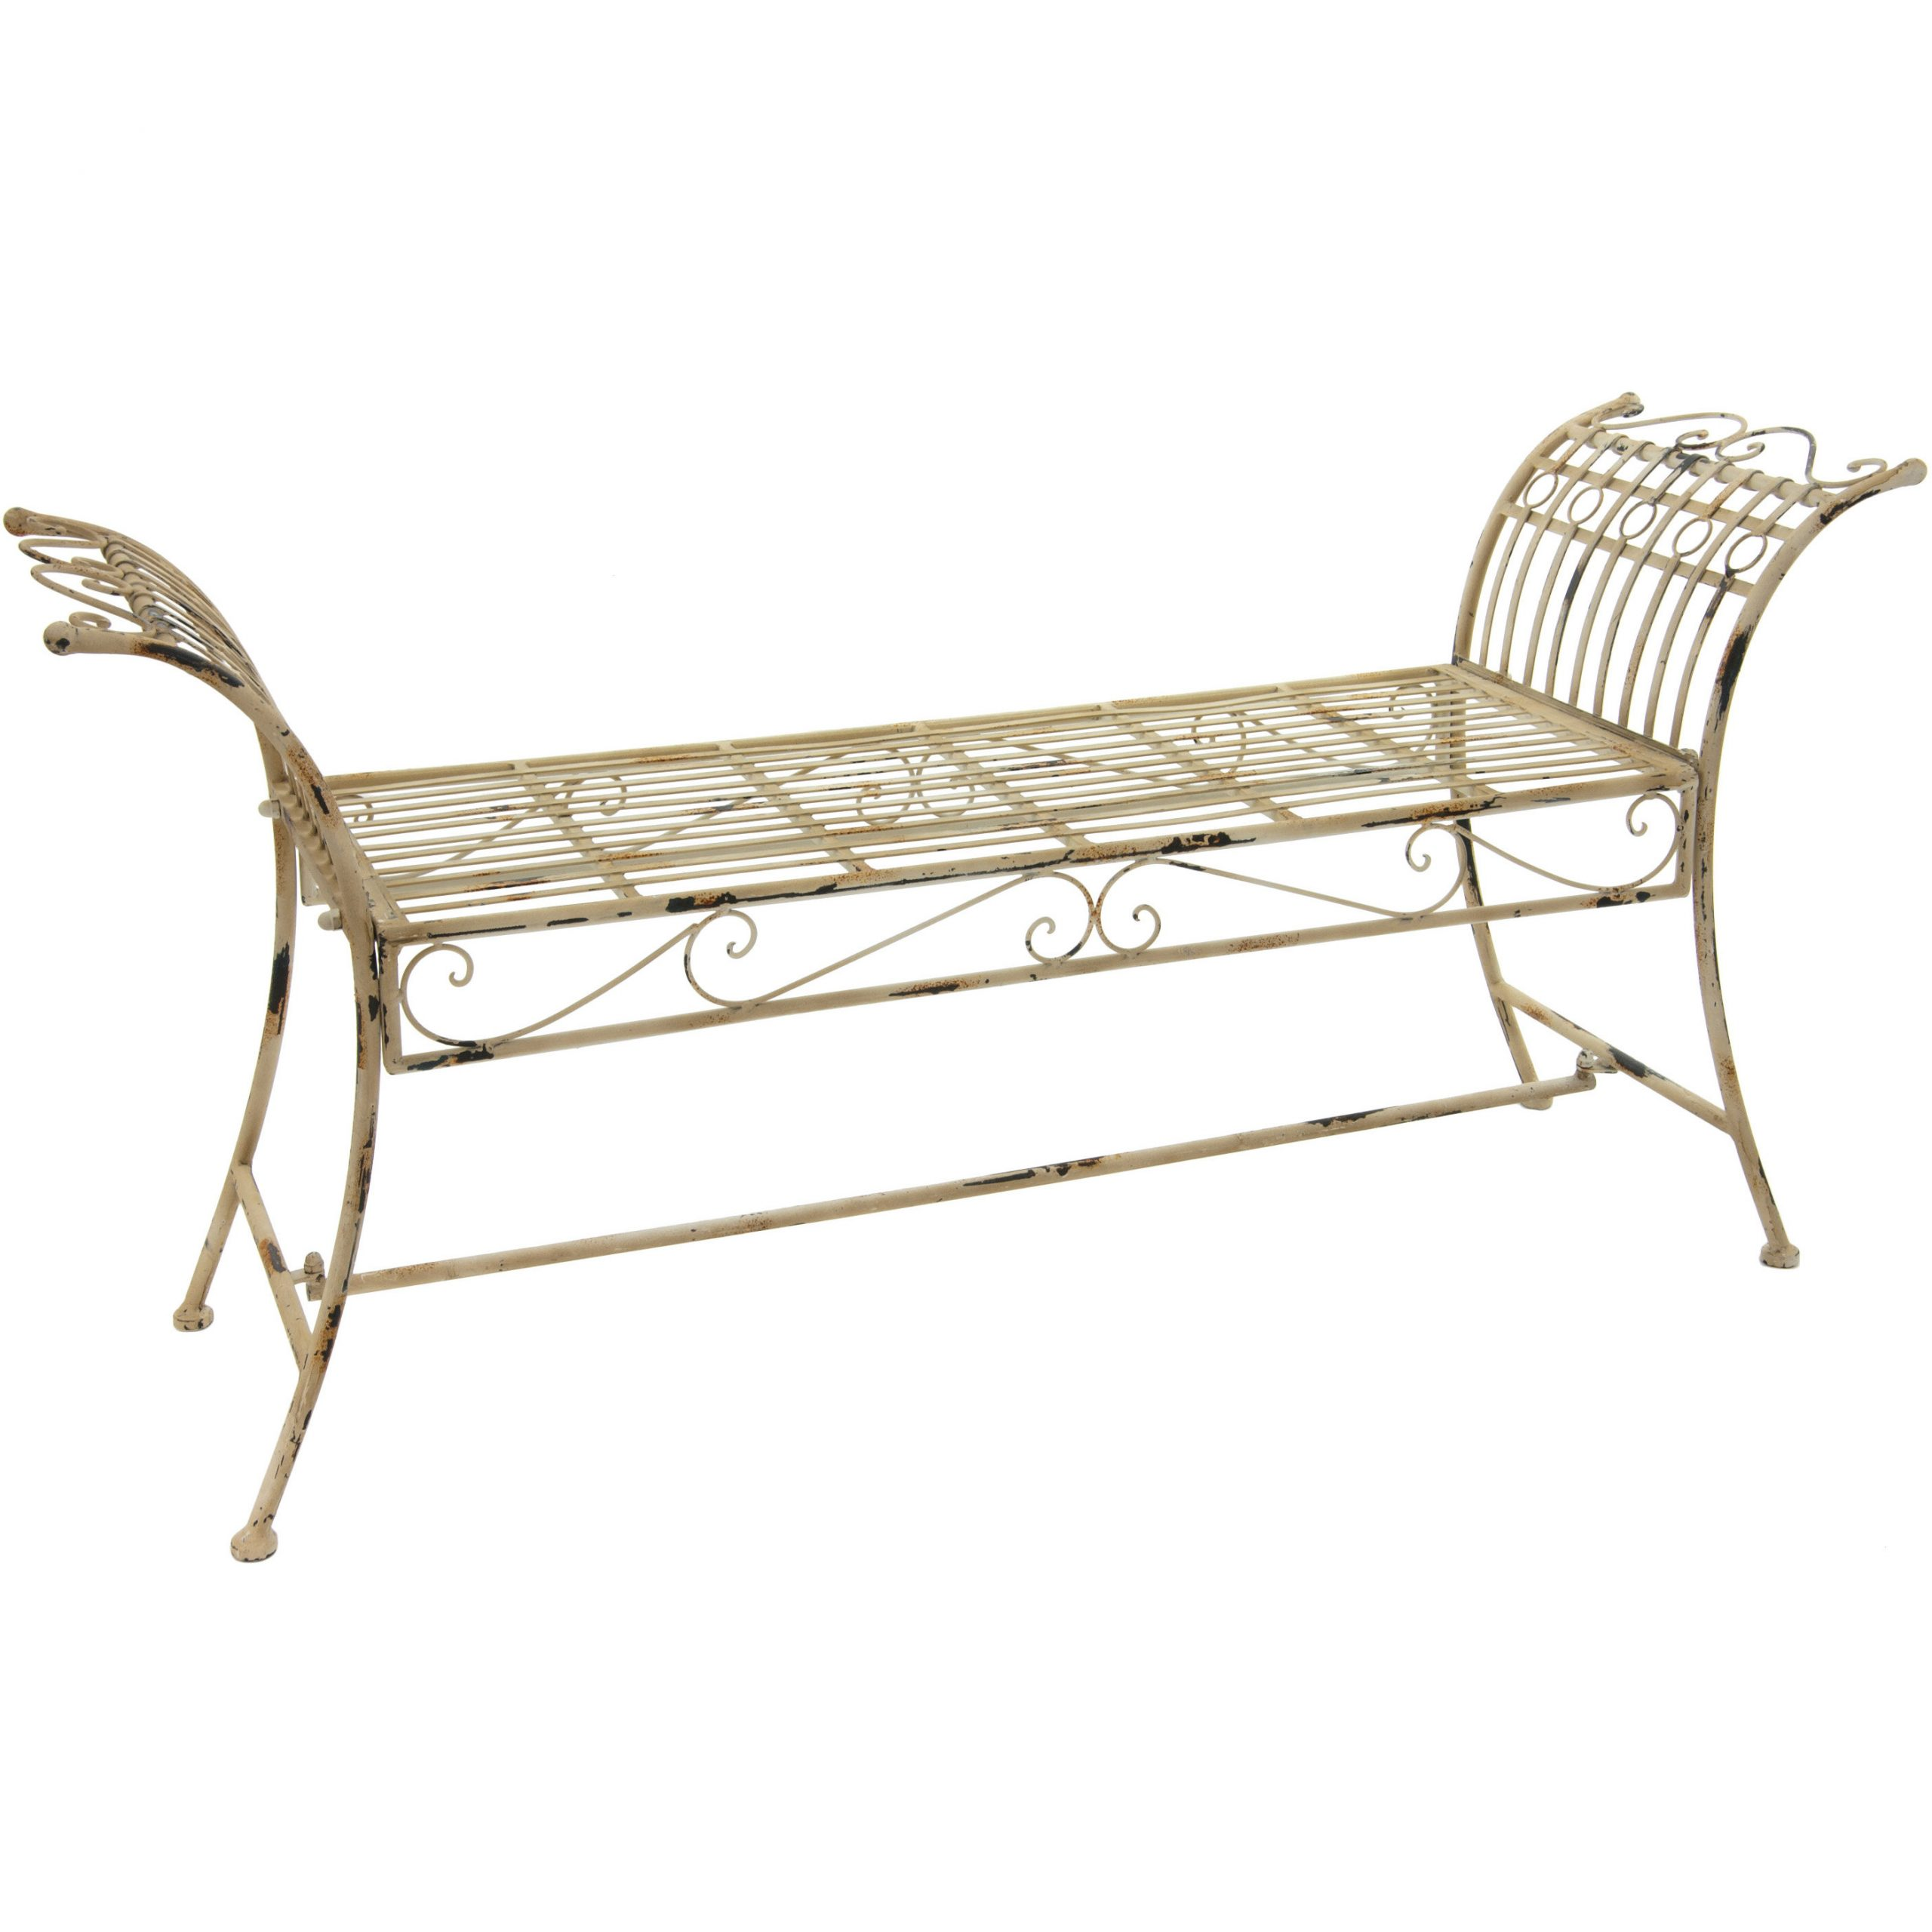 Most Recently Released Bohn Rustic Iron Garden Bench Inside Cavin Garden Benches (View 20 of 30)